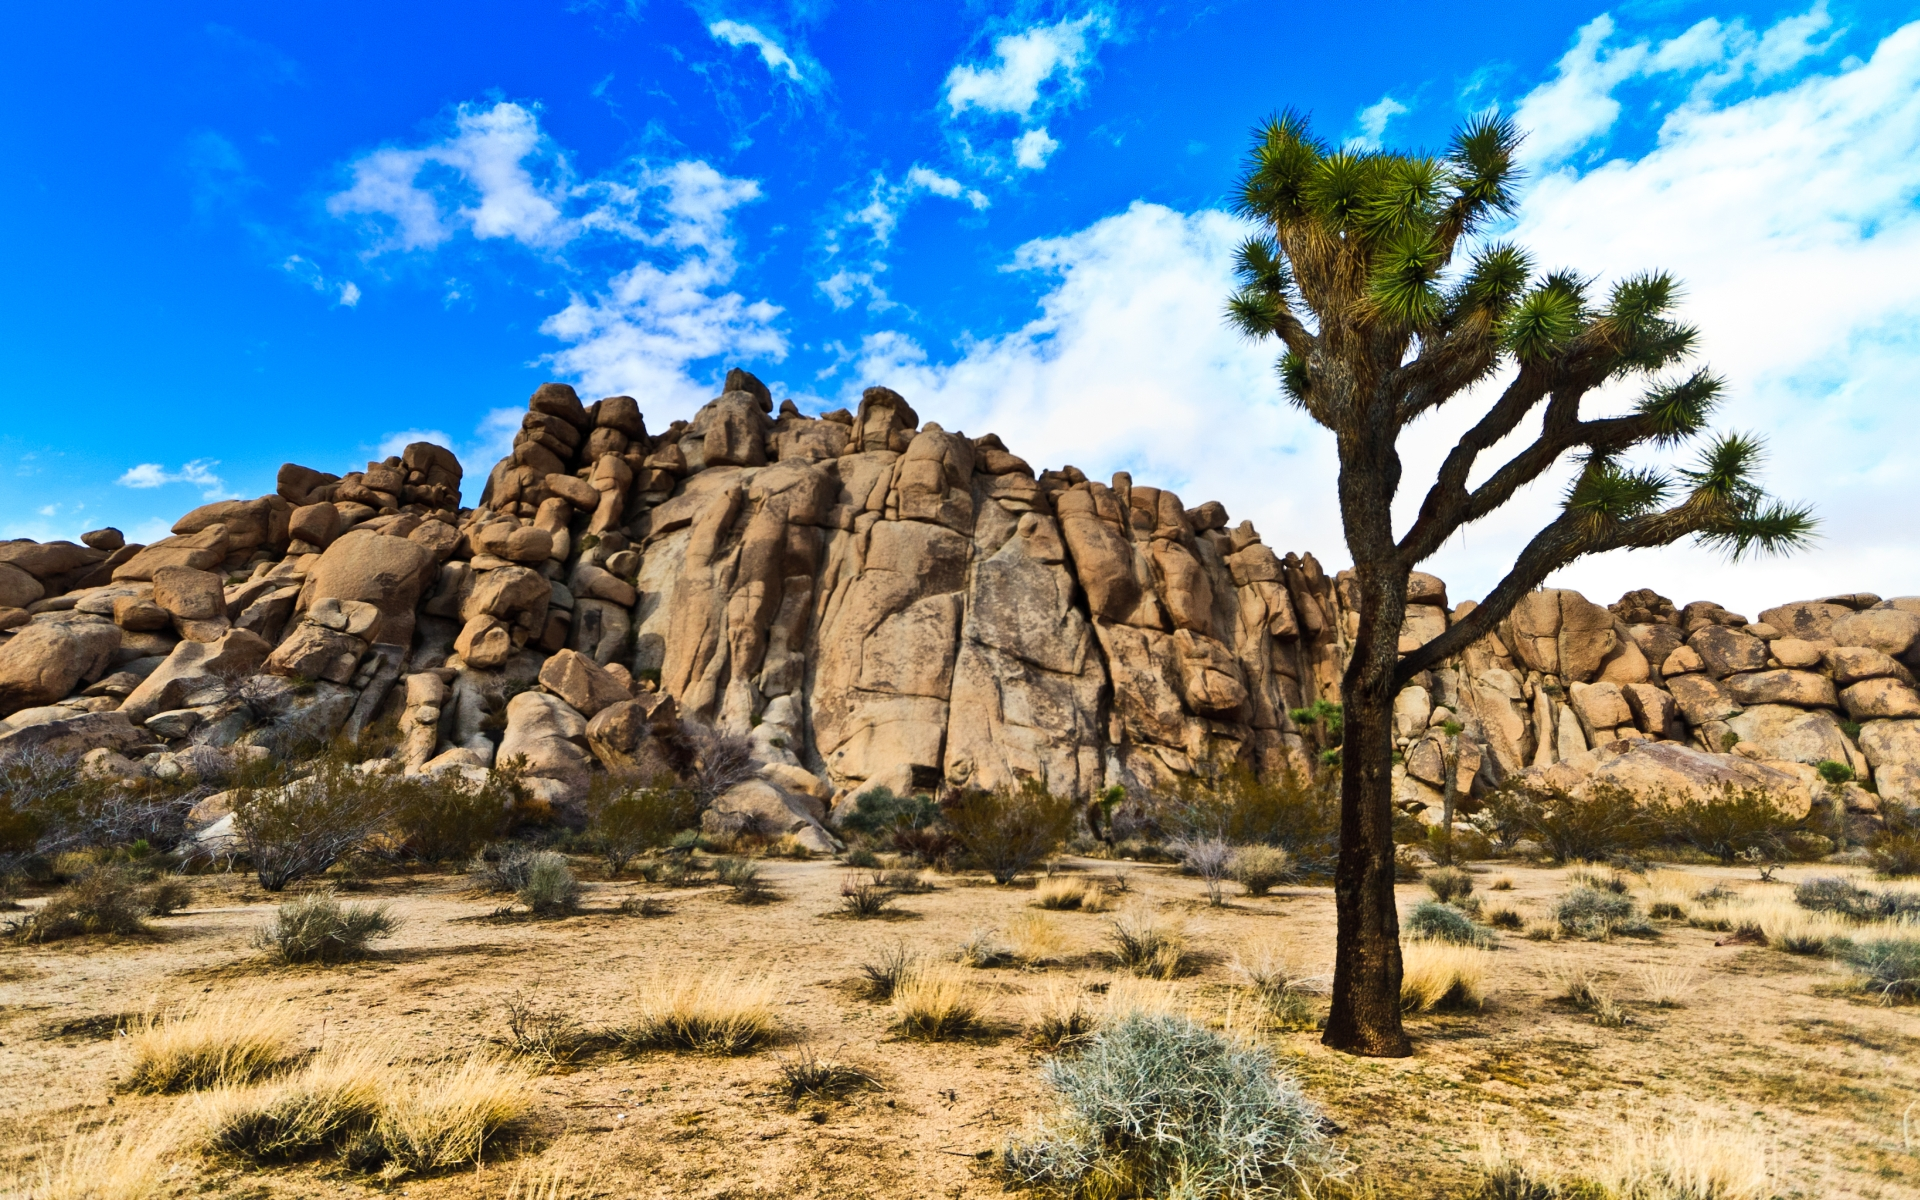 Joshua Tree National Park Hd Wallpaper Background Image 1920x1200 Id 515771 Wallpaper Abyss